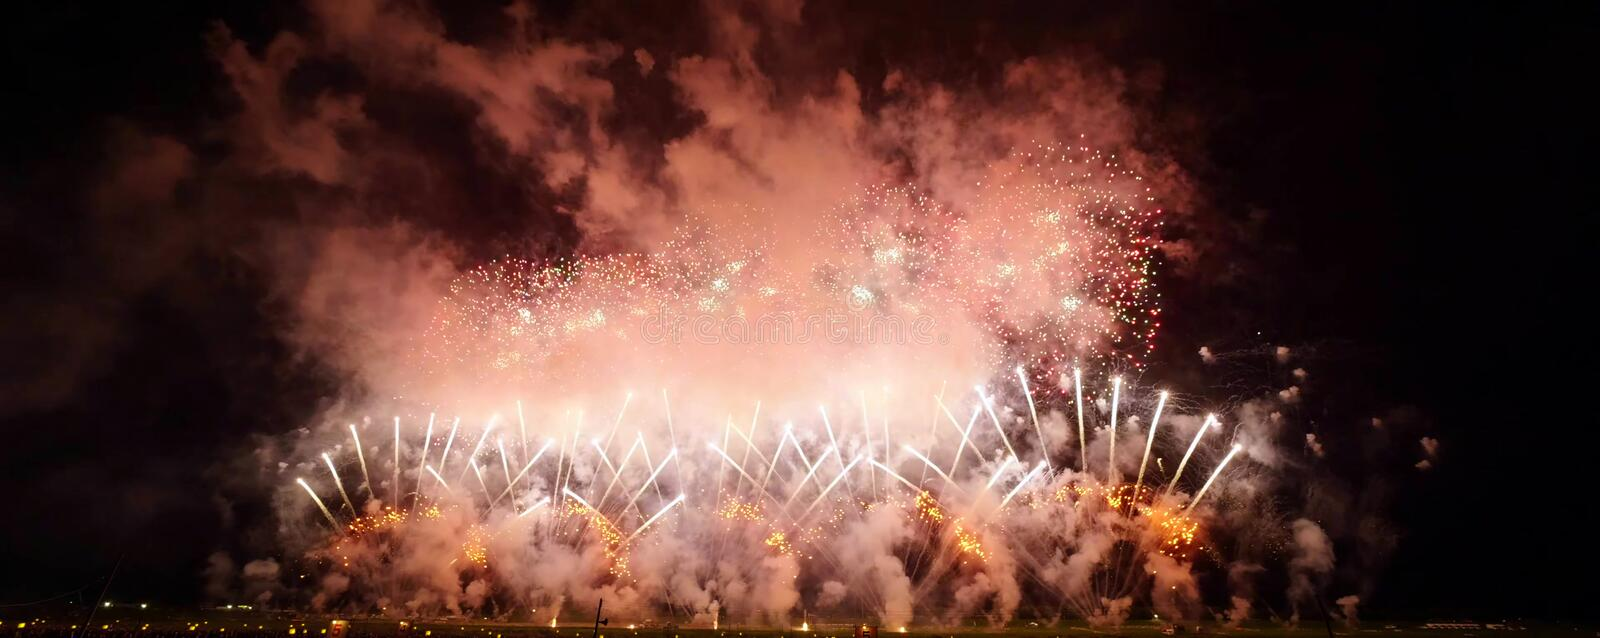 Japanese Superb view fireworks royalty free stock photo